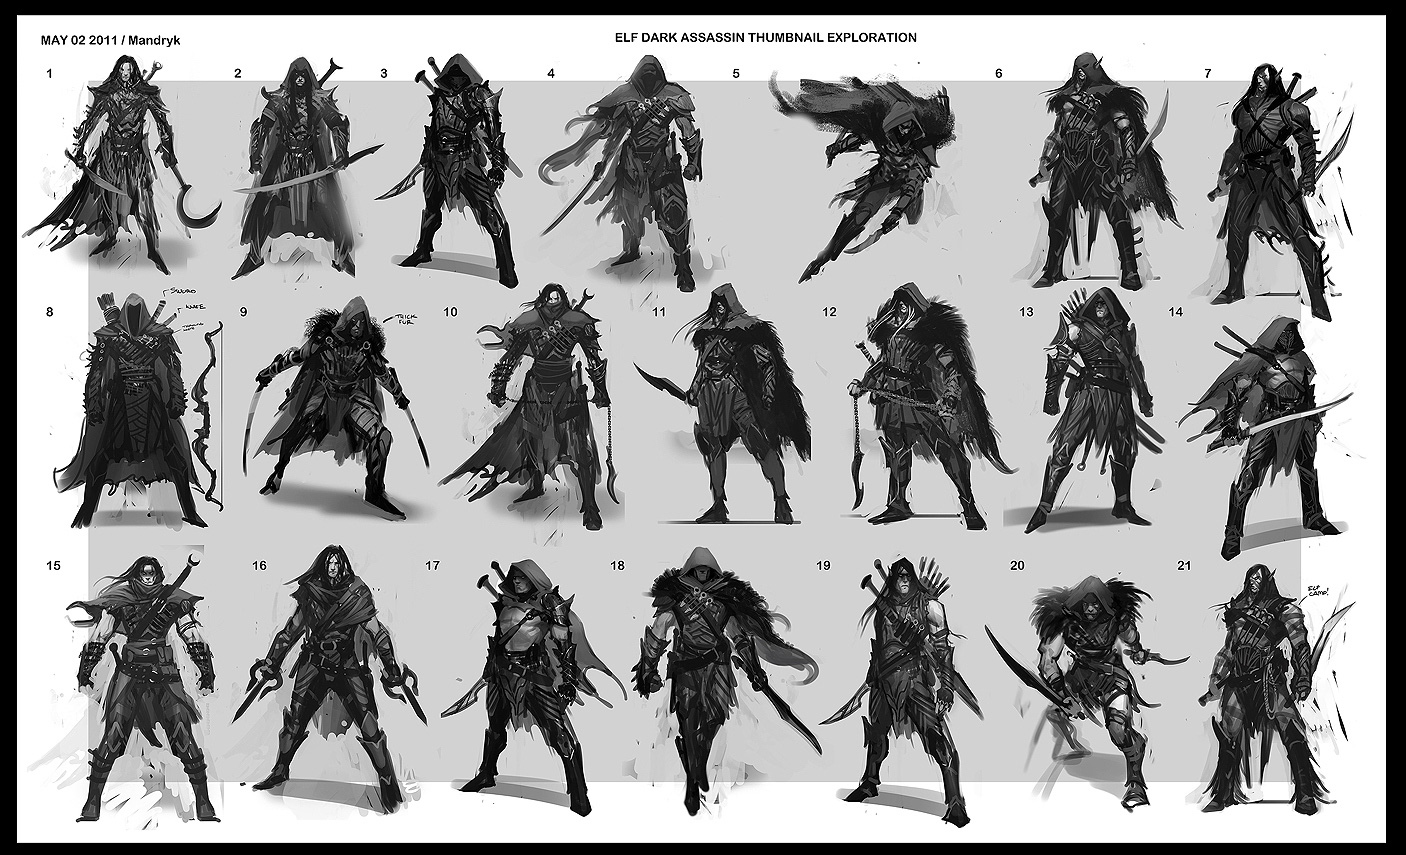 Middle-earth: Shadow of Mordor Concept Art by Daryl Mandryk